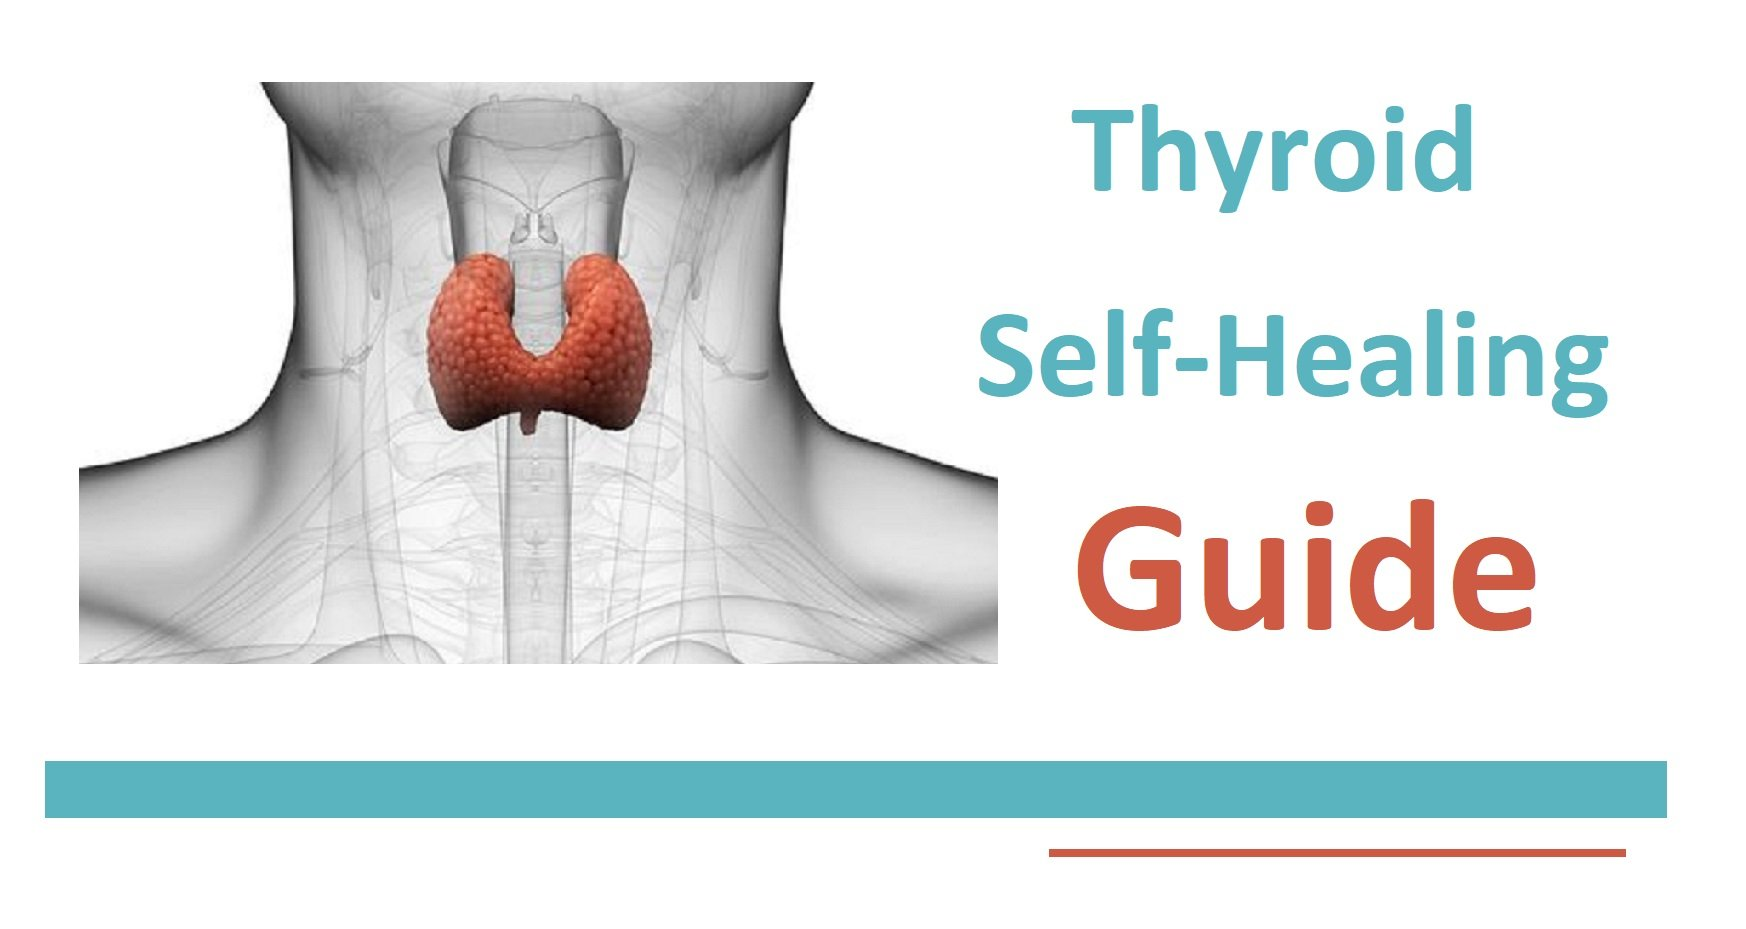 Hypothyroidism Self Healing Guide.